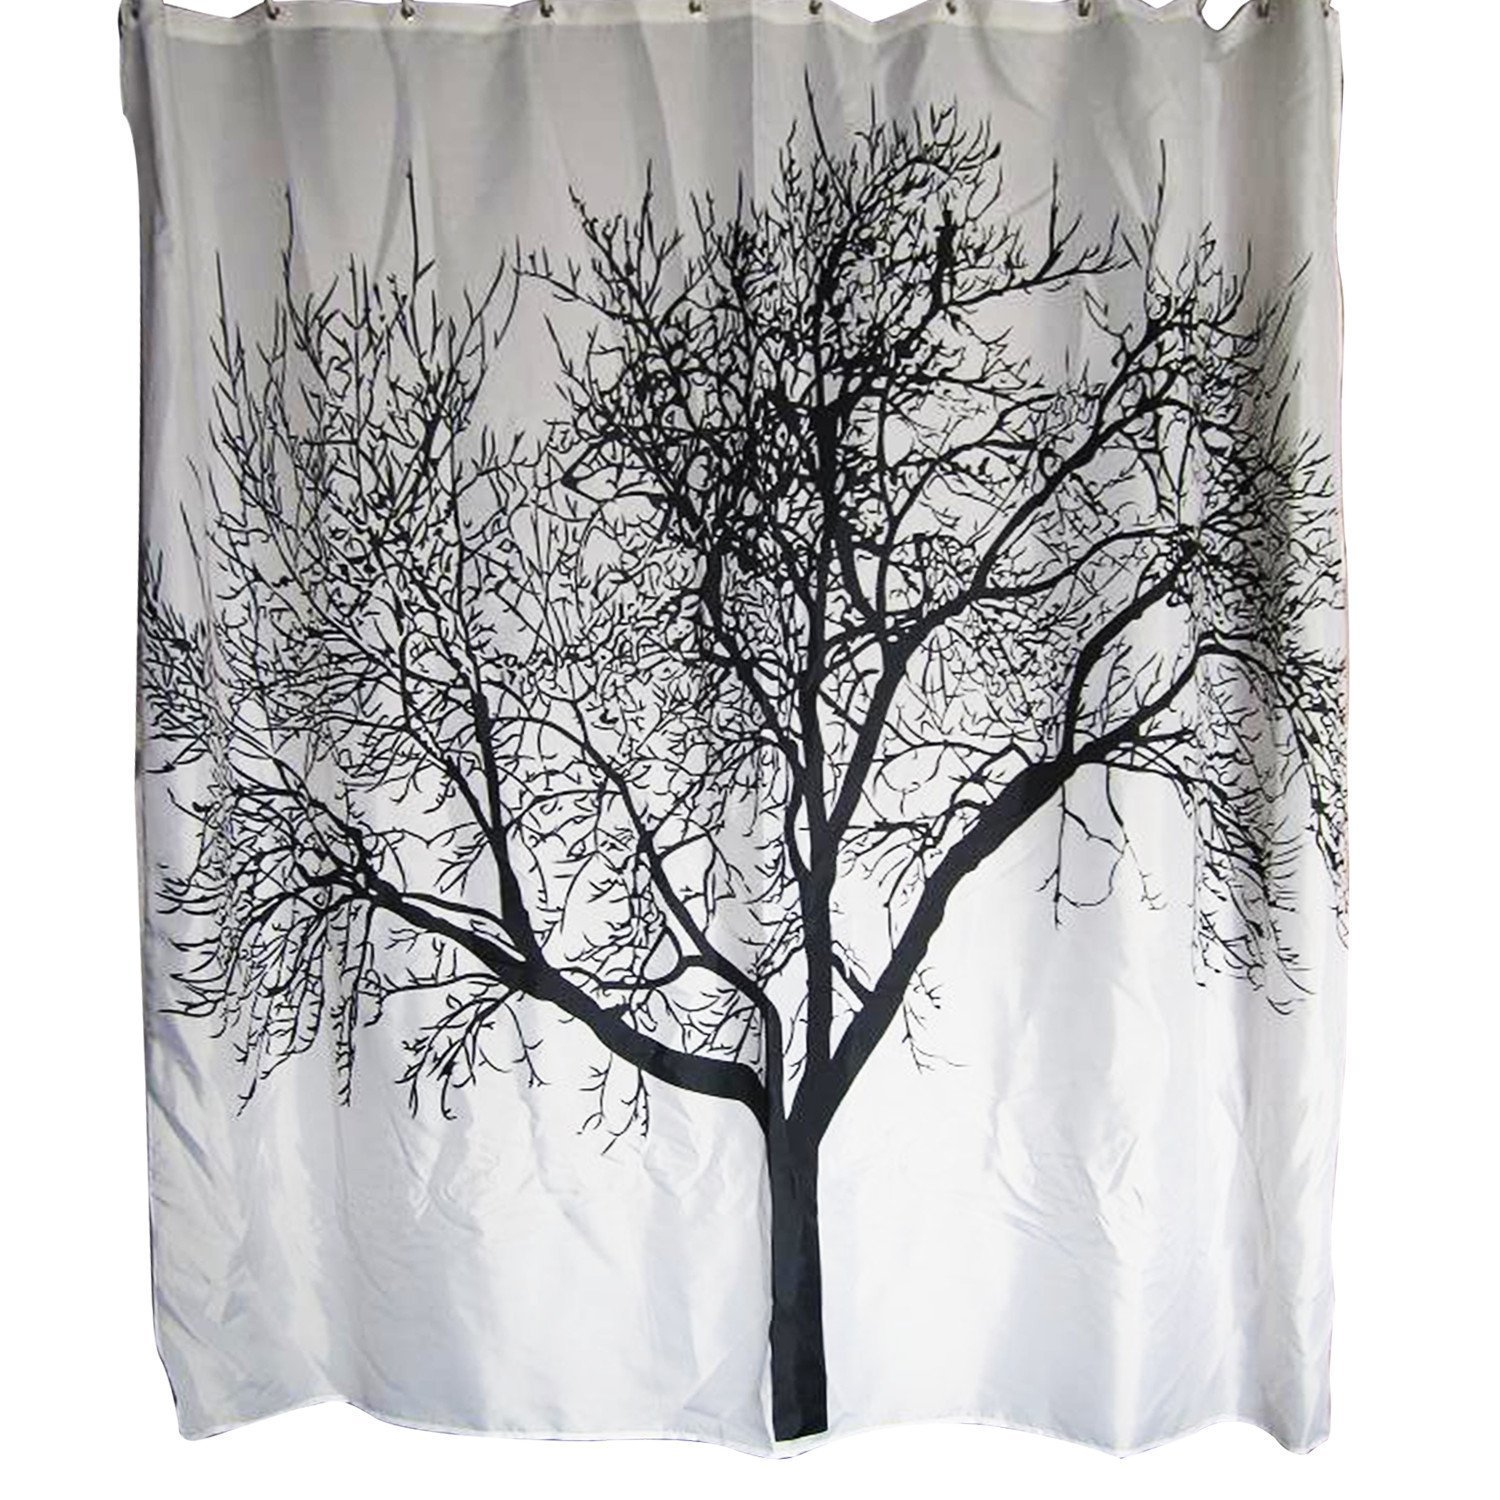 Luxury black and gold shower curtains - Dozenegg Waterproof Shower Curtain With Tree Design 180 Cm X 180 Cm